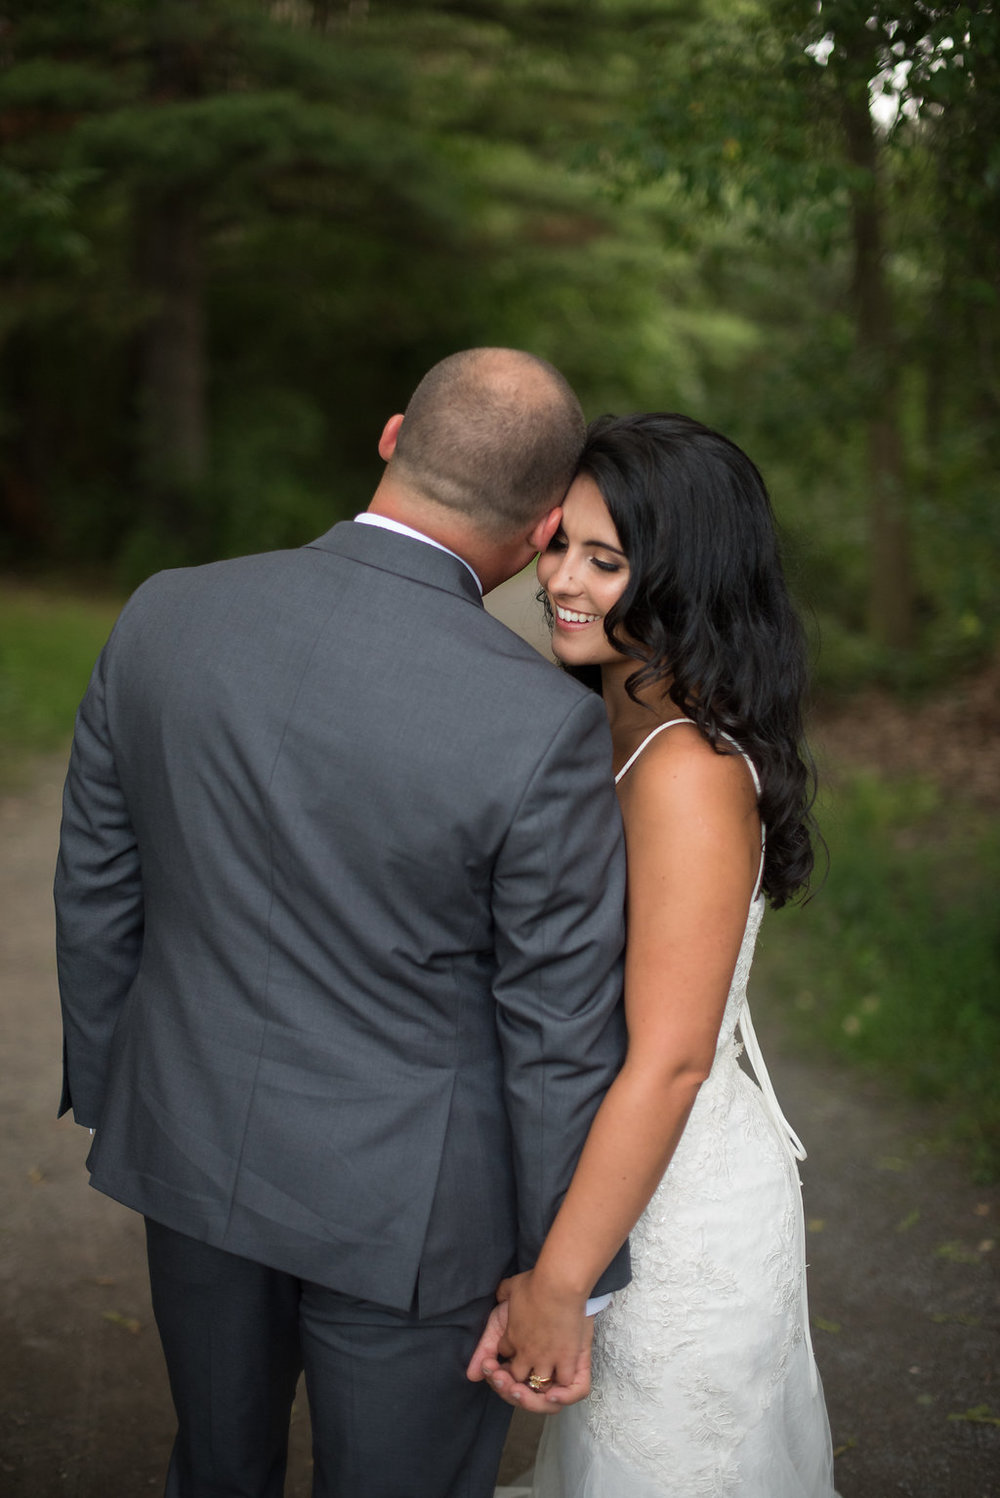 vermont wedding photographer-bridepartyportraits-36.jpg